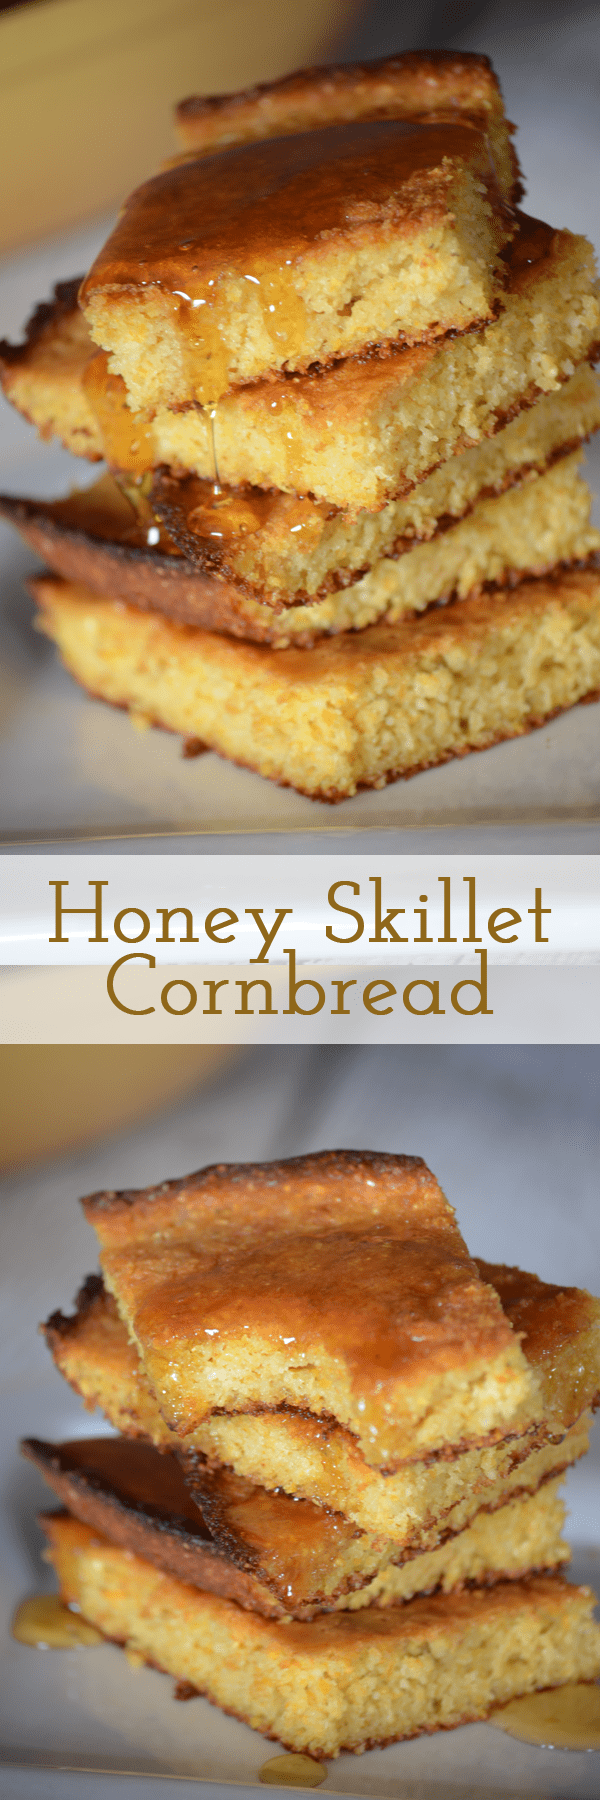 You have got to try this honey skillet cornbread recipe! It is so good and perfect for soups or just to snack on! Easiest recipe I have found too